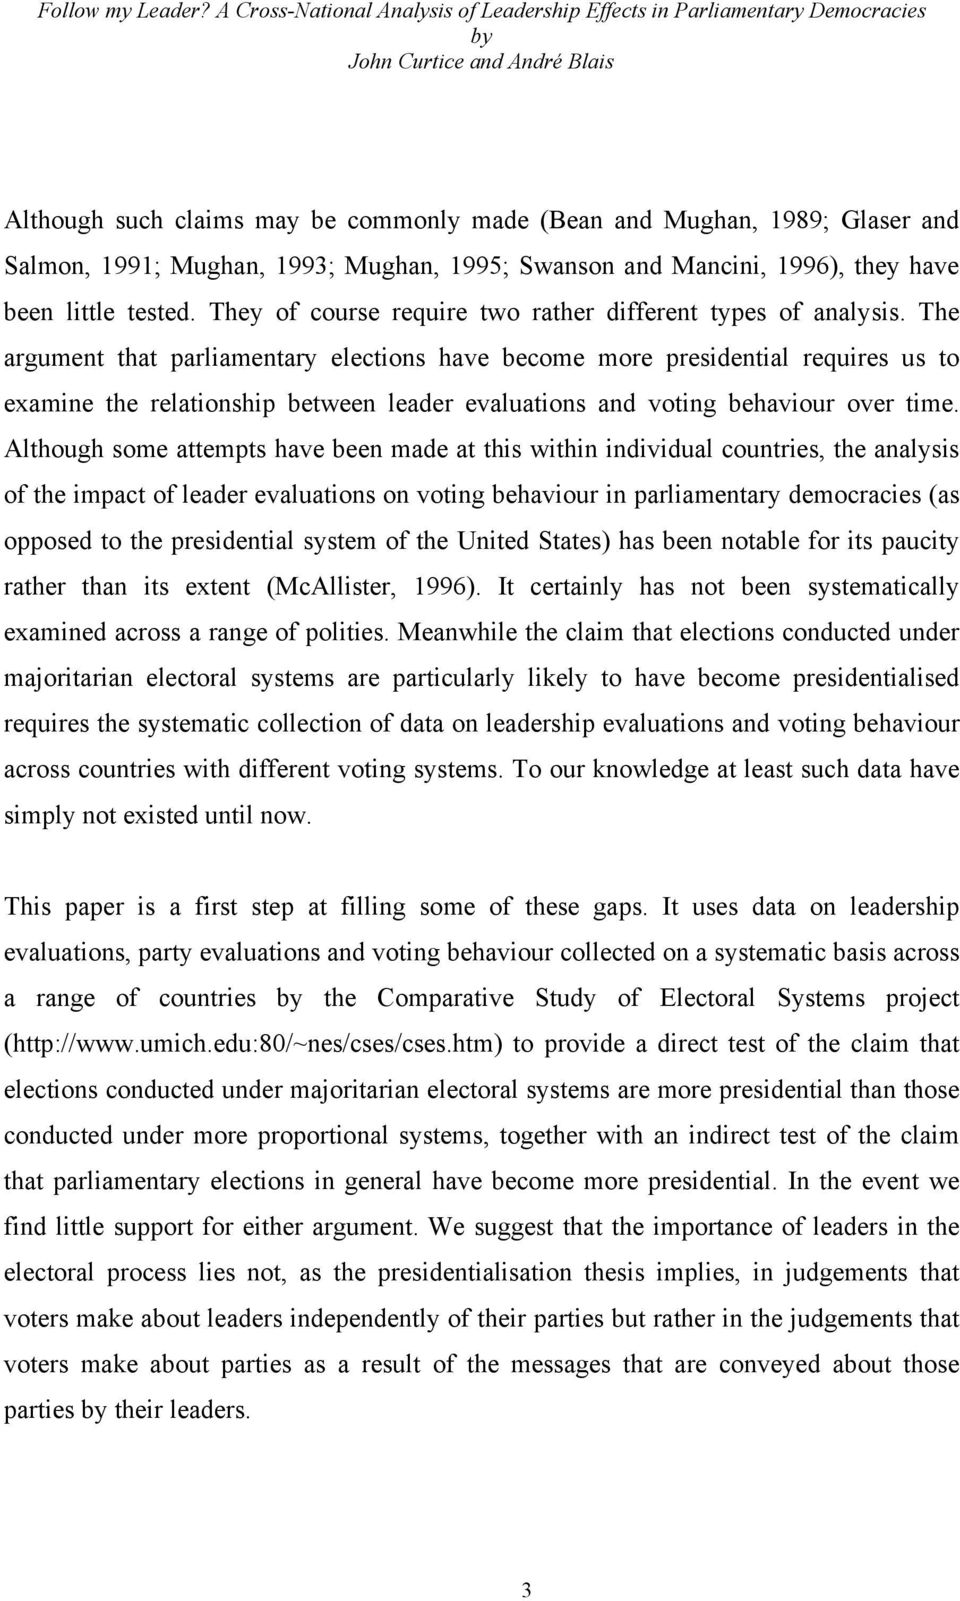 The argument that parliamentary elections have become more presidential requires us to examine the relationship between leader evaluations and voting behaviour over time.